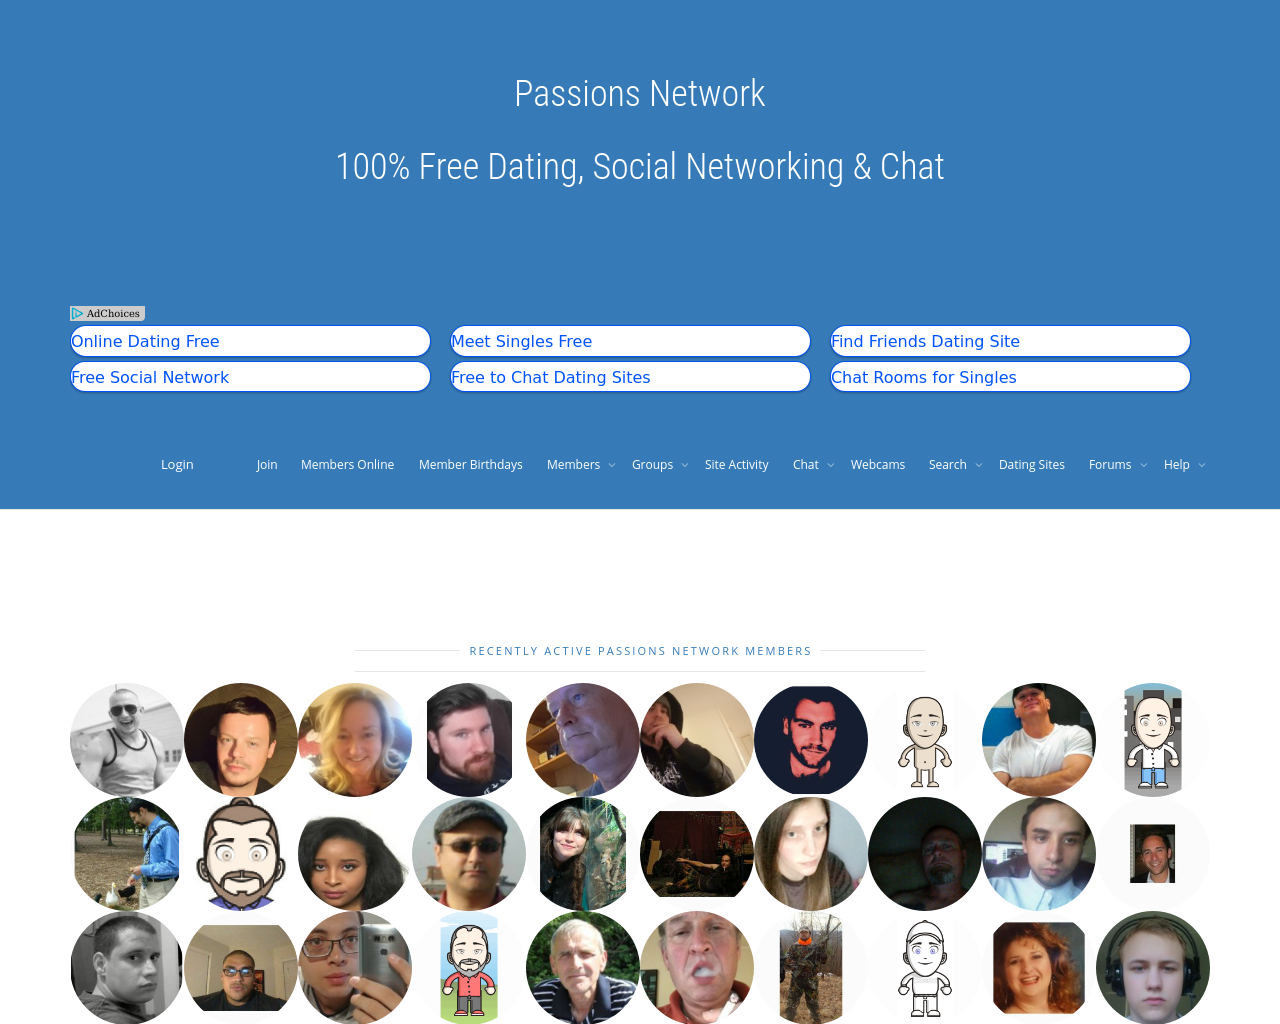 Passions-Network-Advertising-Reviews-Pricing